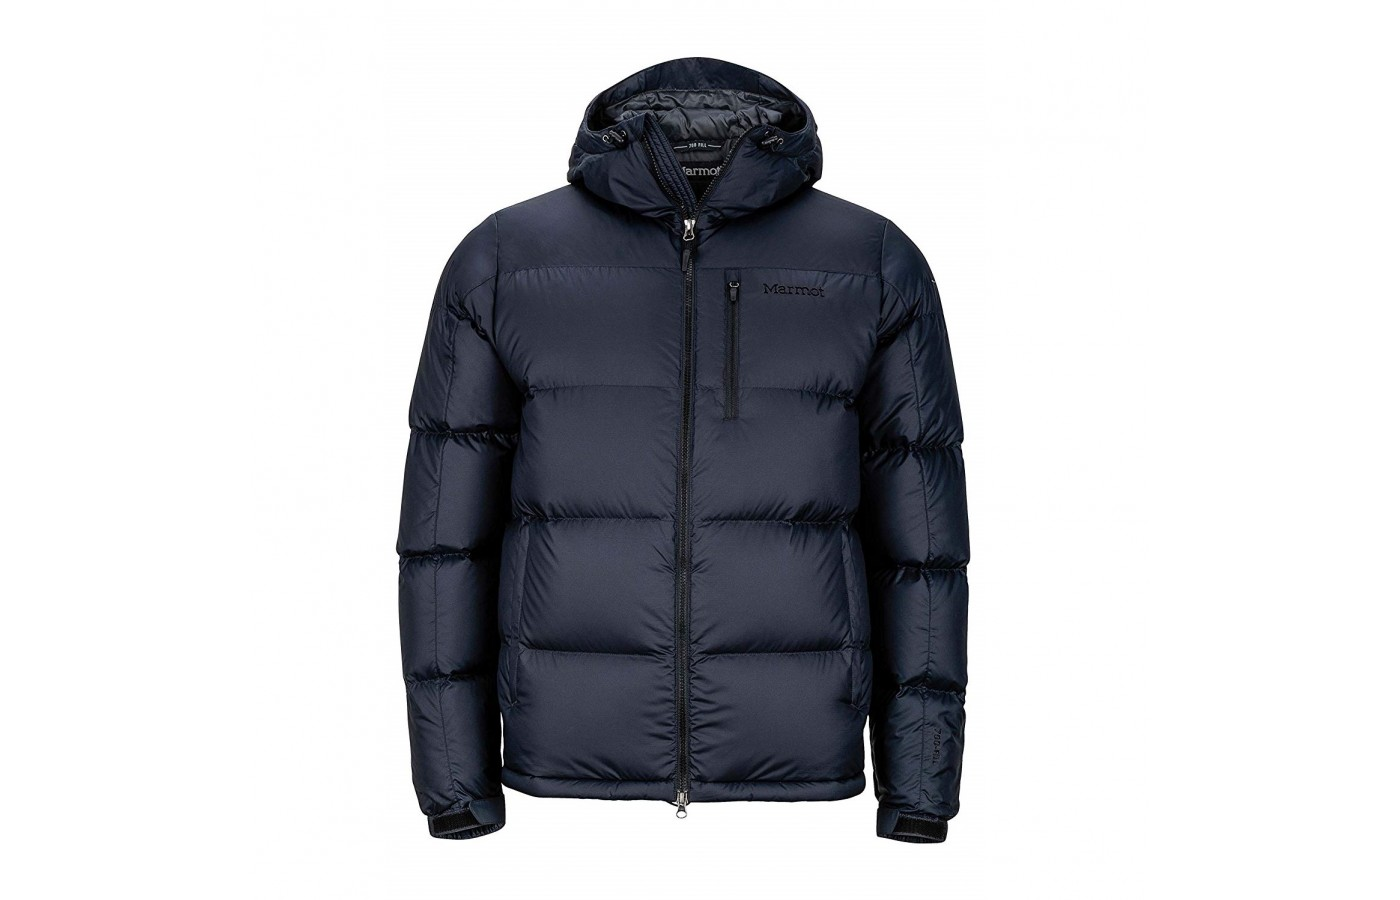 The Marmot Guides Down Hoody offers both wind and water resistance to withstand the elements.